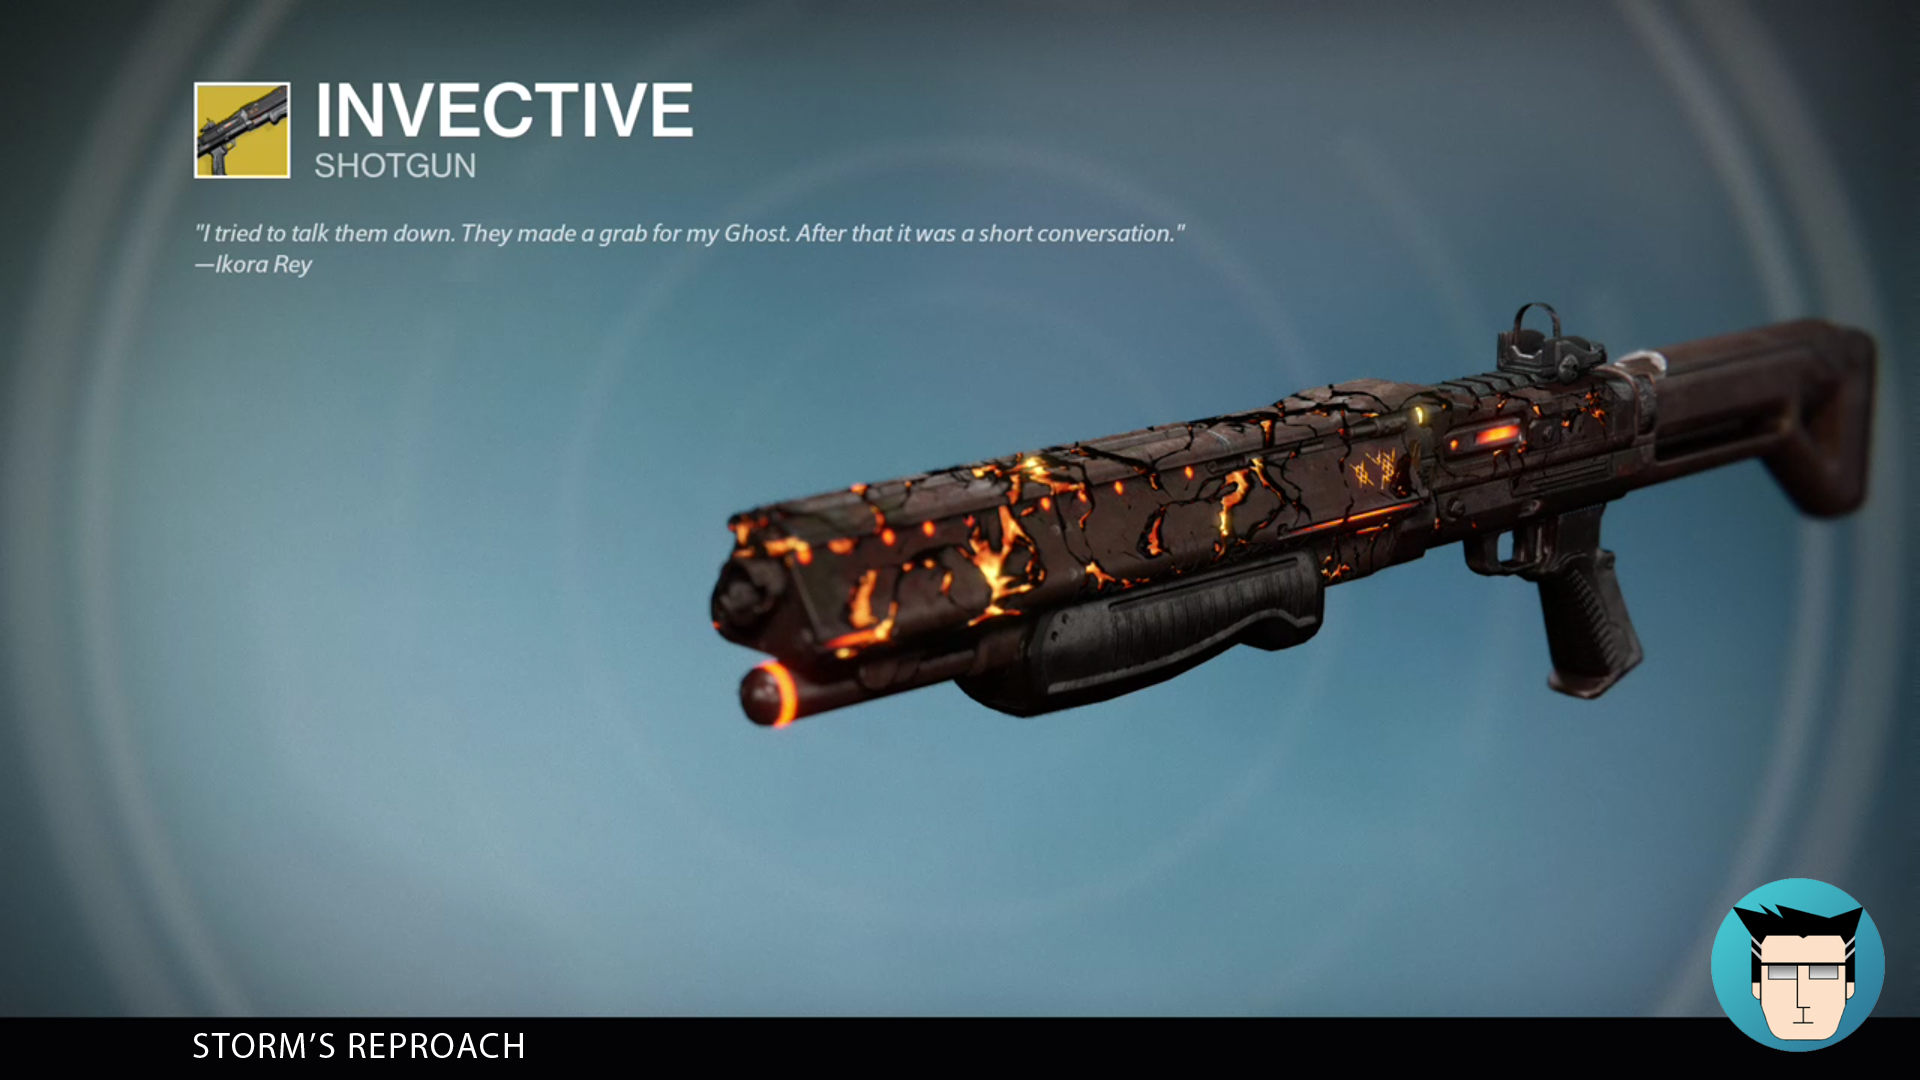 INVECTIVE | STORM'S REPROACH